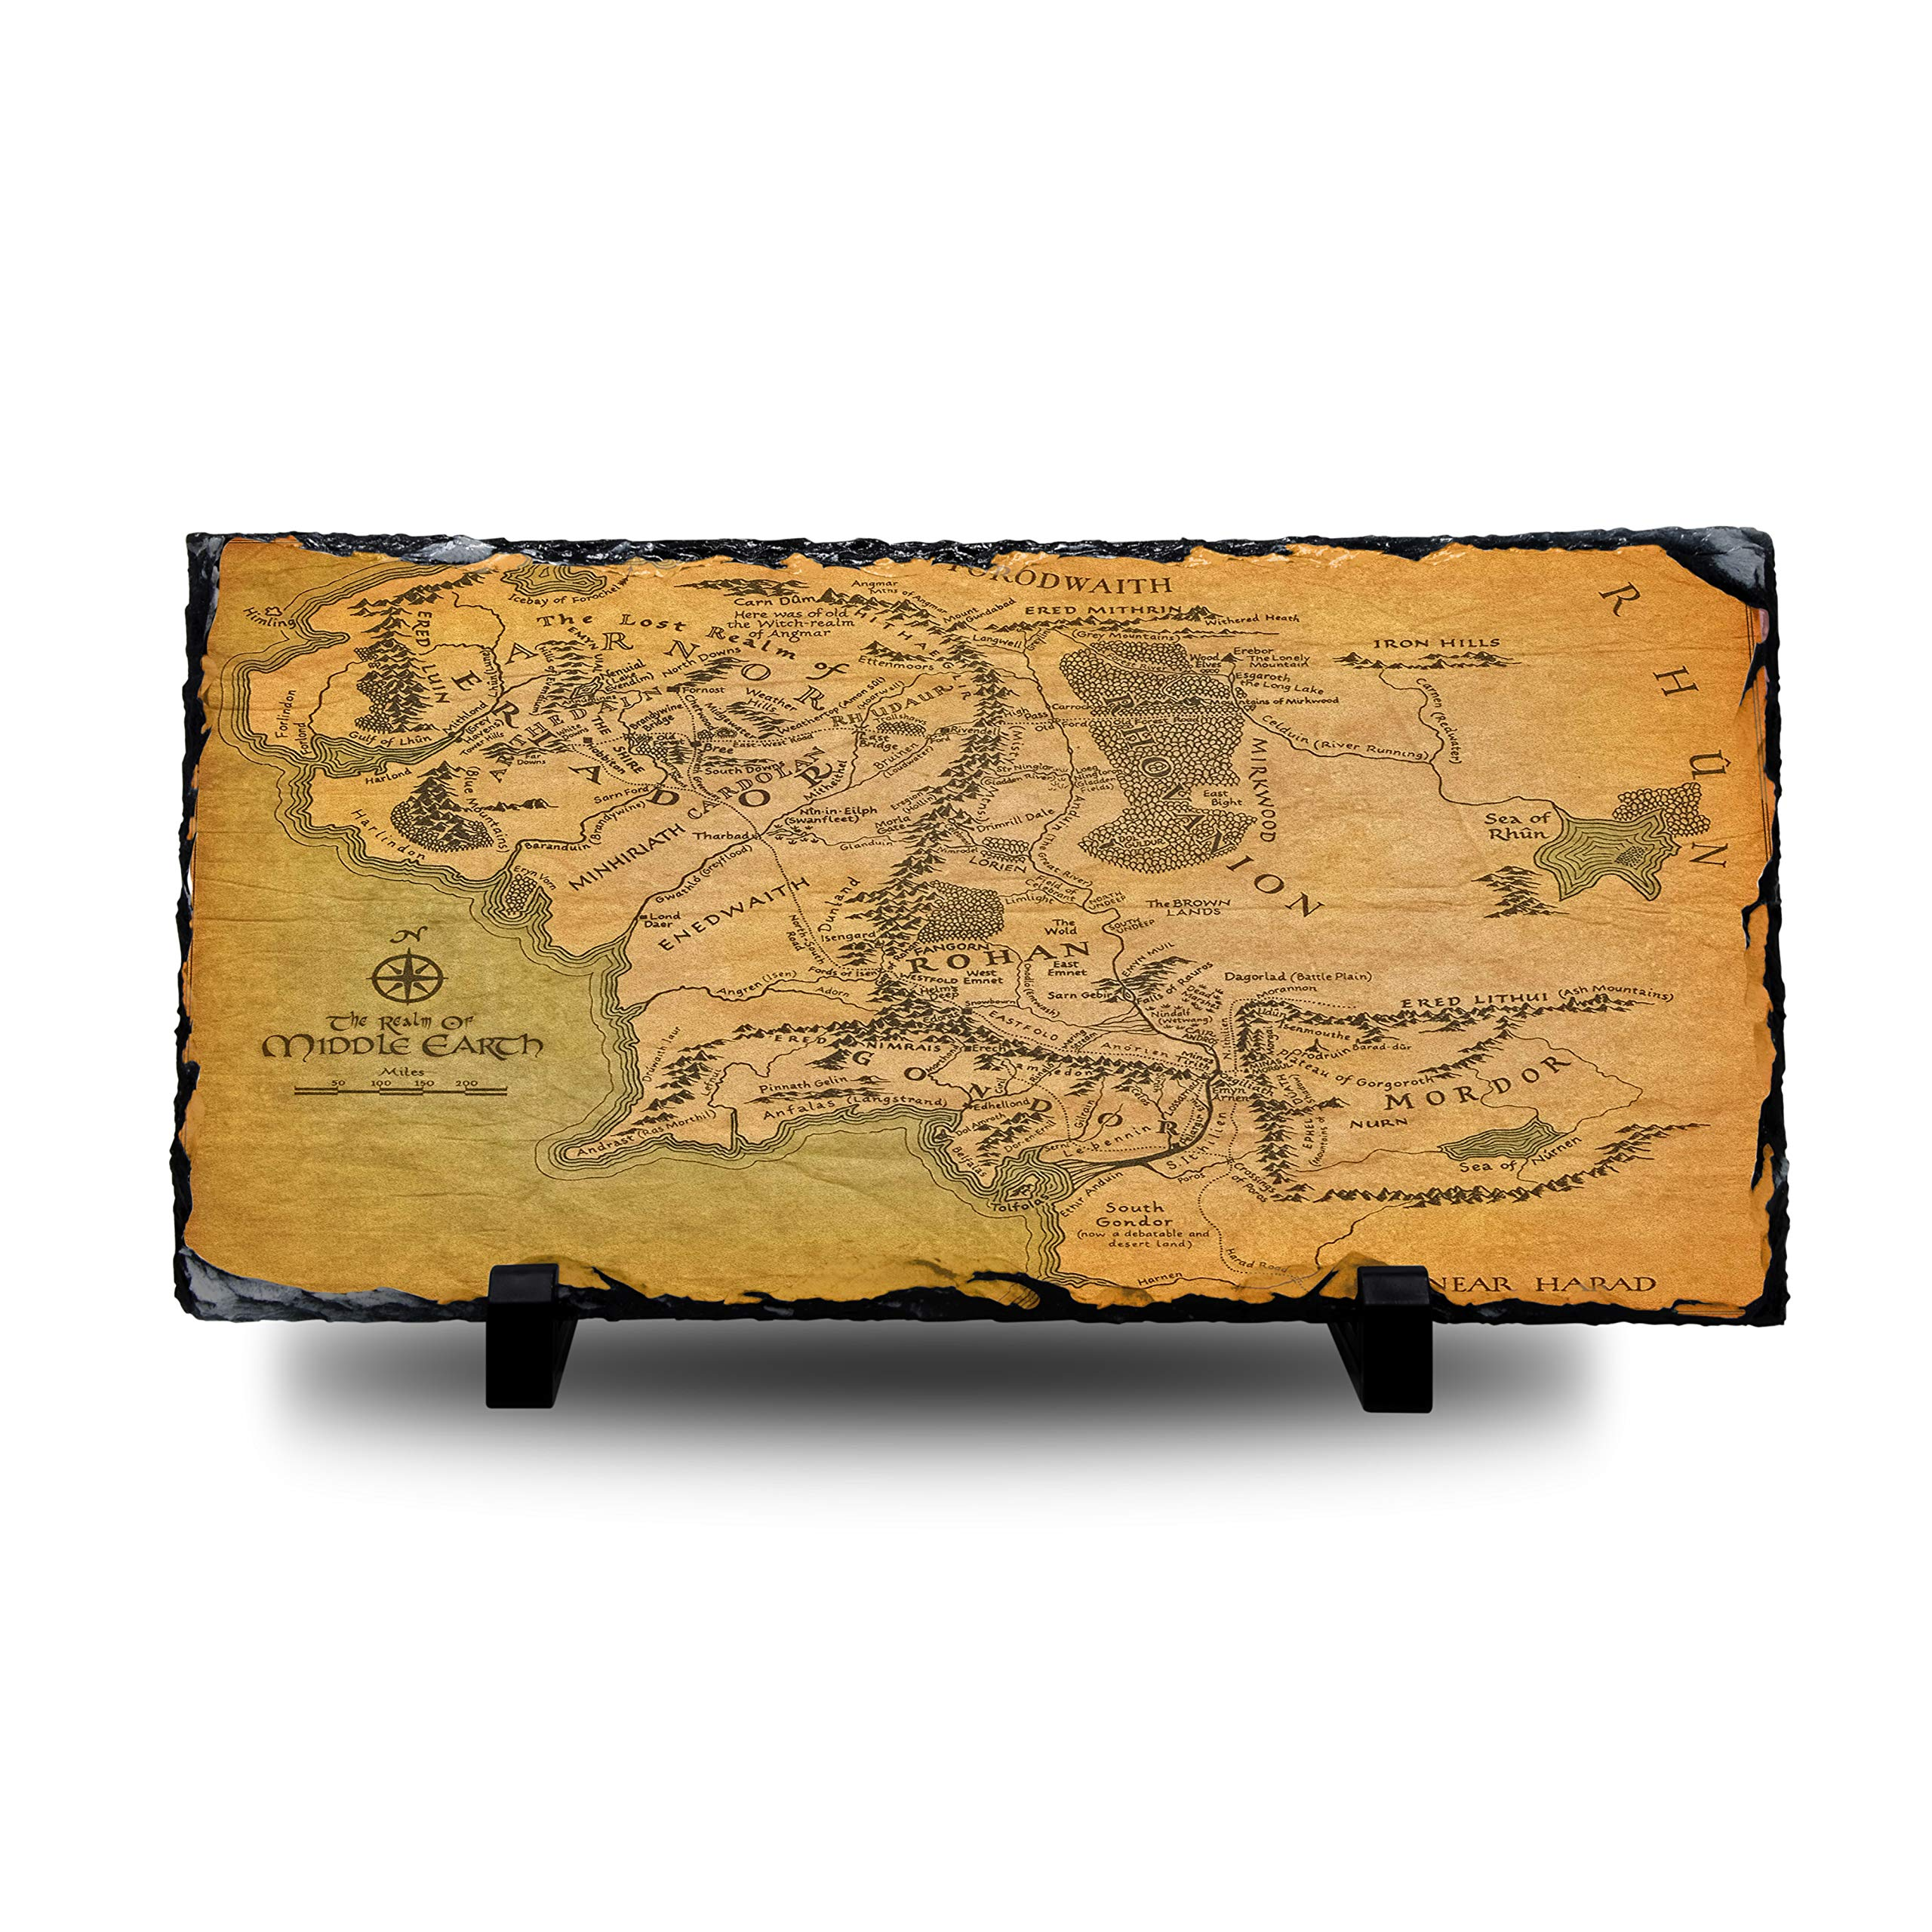 ASS The Lord of The Rings – Mapa de la Tierra Media, Pizarra Natural con Soporte para TV, Escritorio, Regalo, 30x15cm: Amazon.es: Hogar